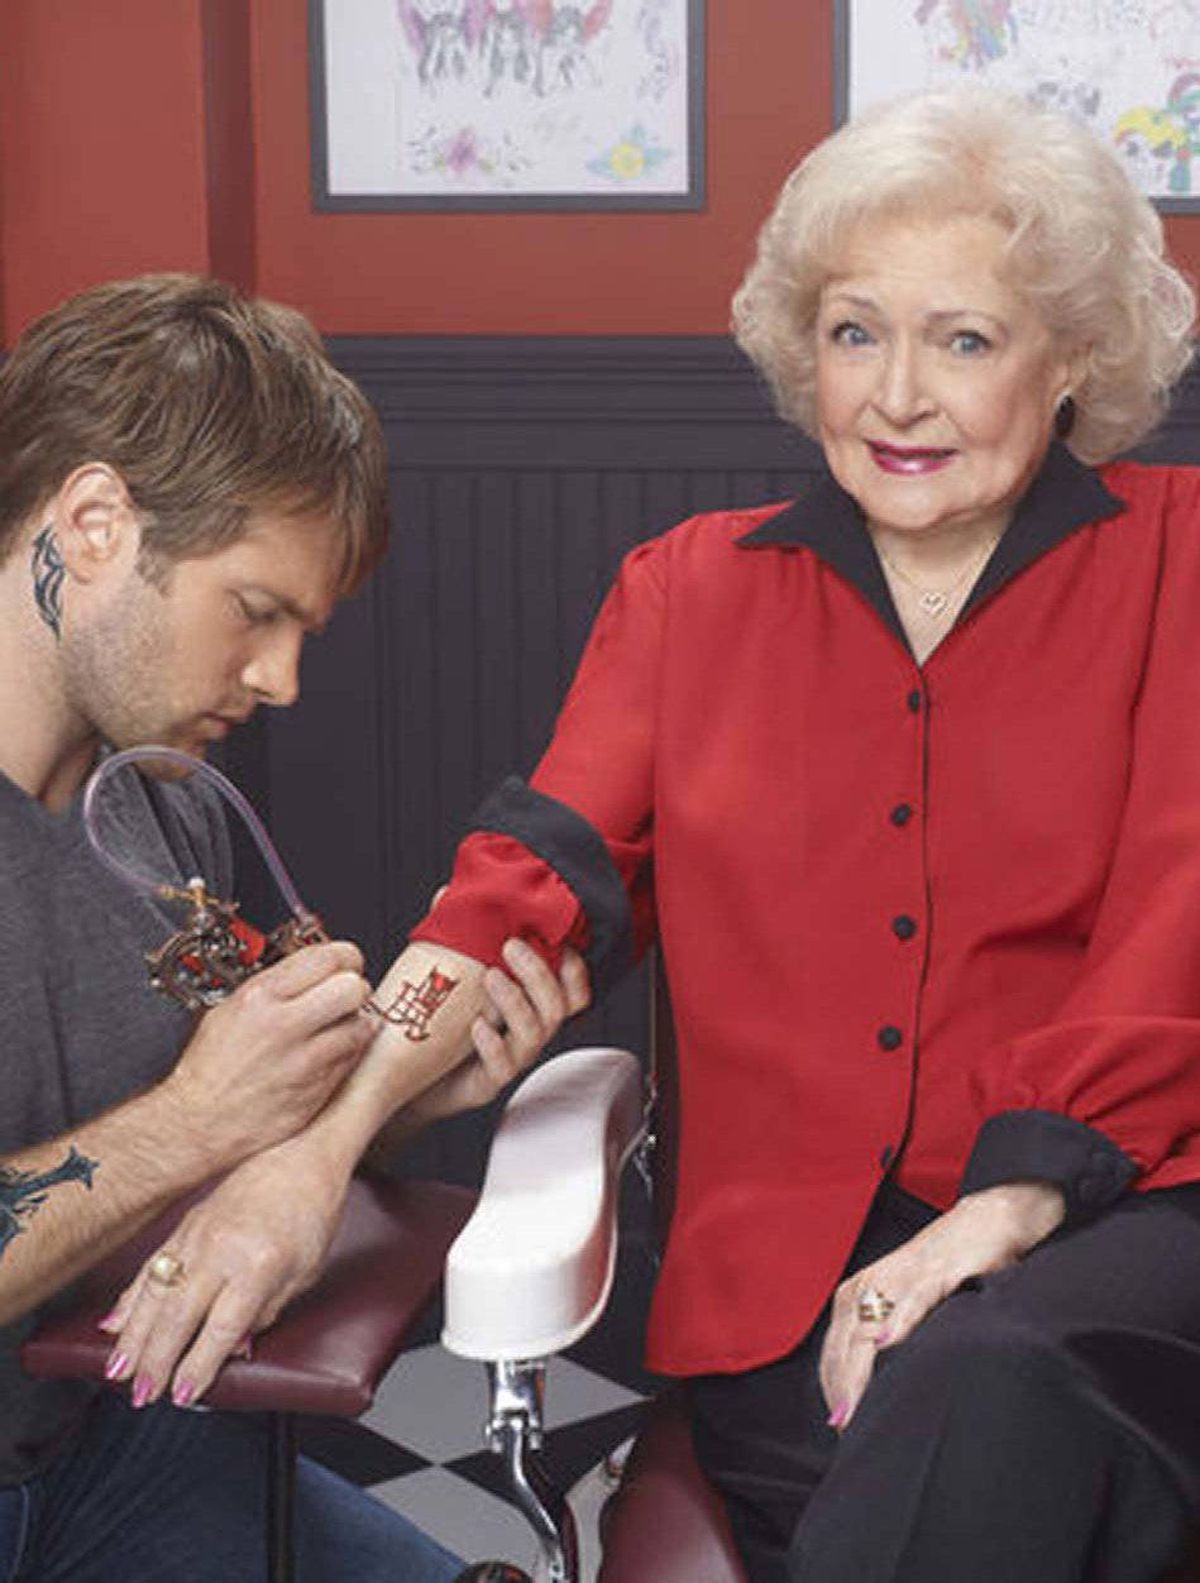 "COMEDY Betty White's Off Their Rockers NBC, CTV Two, 8 p.m. ET/PT The public's love affair with Betty White just keeps on going. Tested to huge U.S. ratings in January, this new show finds the 90-year-old White setting a handful of her fellow seniors loose on the streets to pull pranks on young people, while hidden cameras film the hilarious results. Hence, in tonight's opener we have a dear old lady spreading her late spouse's ashes on a park bench and another handing out tickets to young whippersnappers for ""makeup violations."" White provides the saucy commentary in between the pranks. Long may she run."